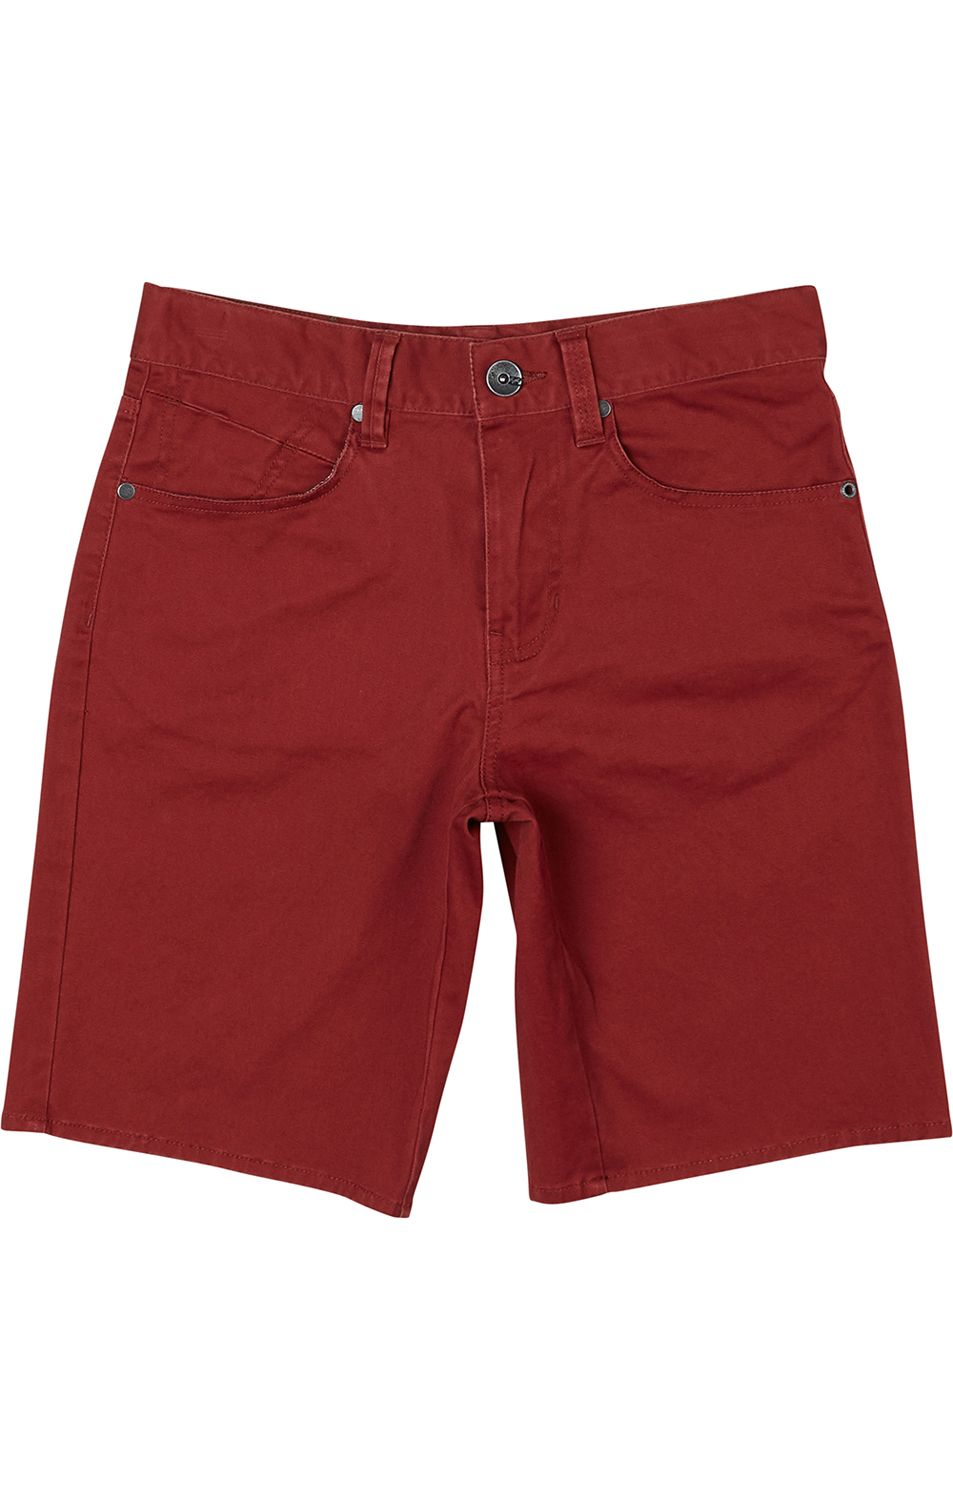 Walkshorts Billabong OUTSIDER 5 POCKET Brick